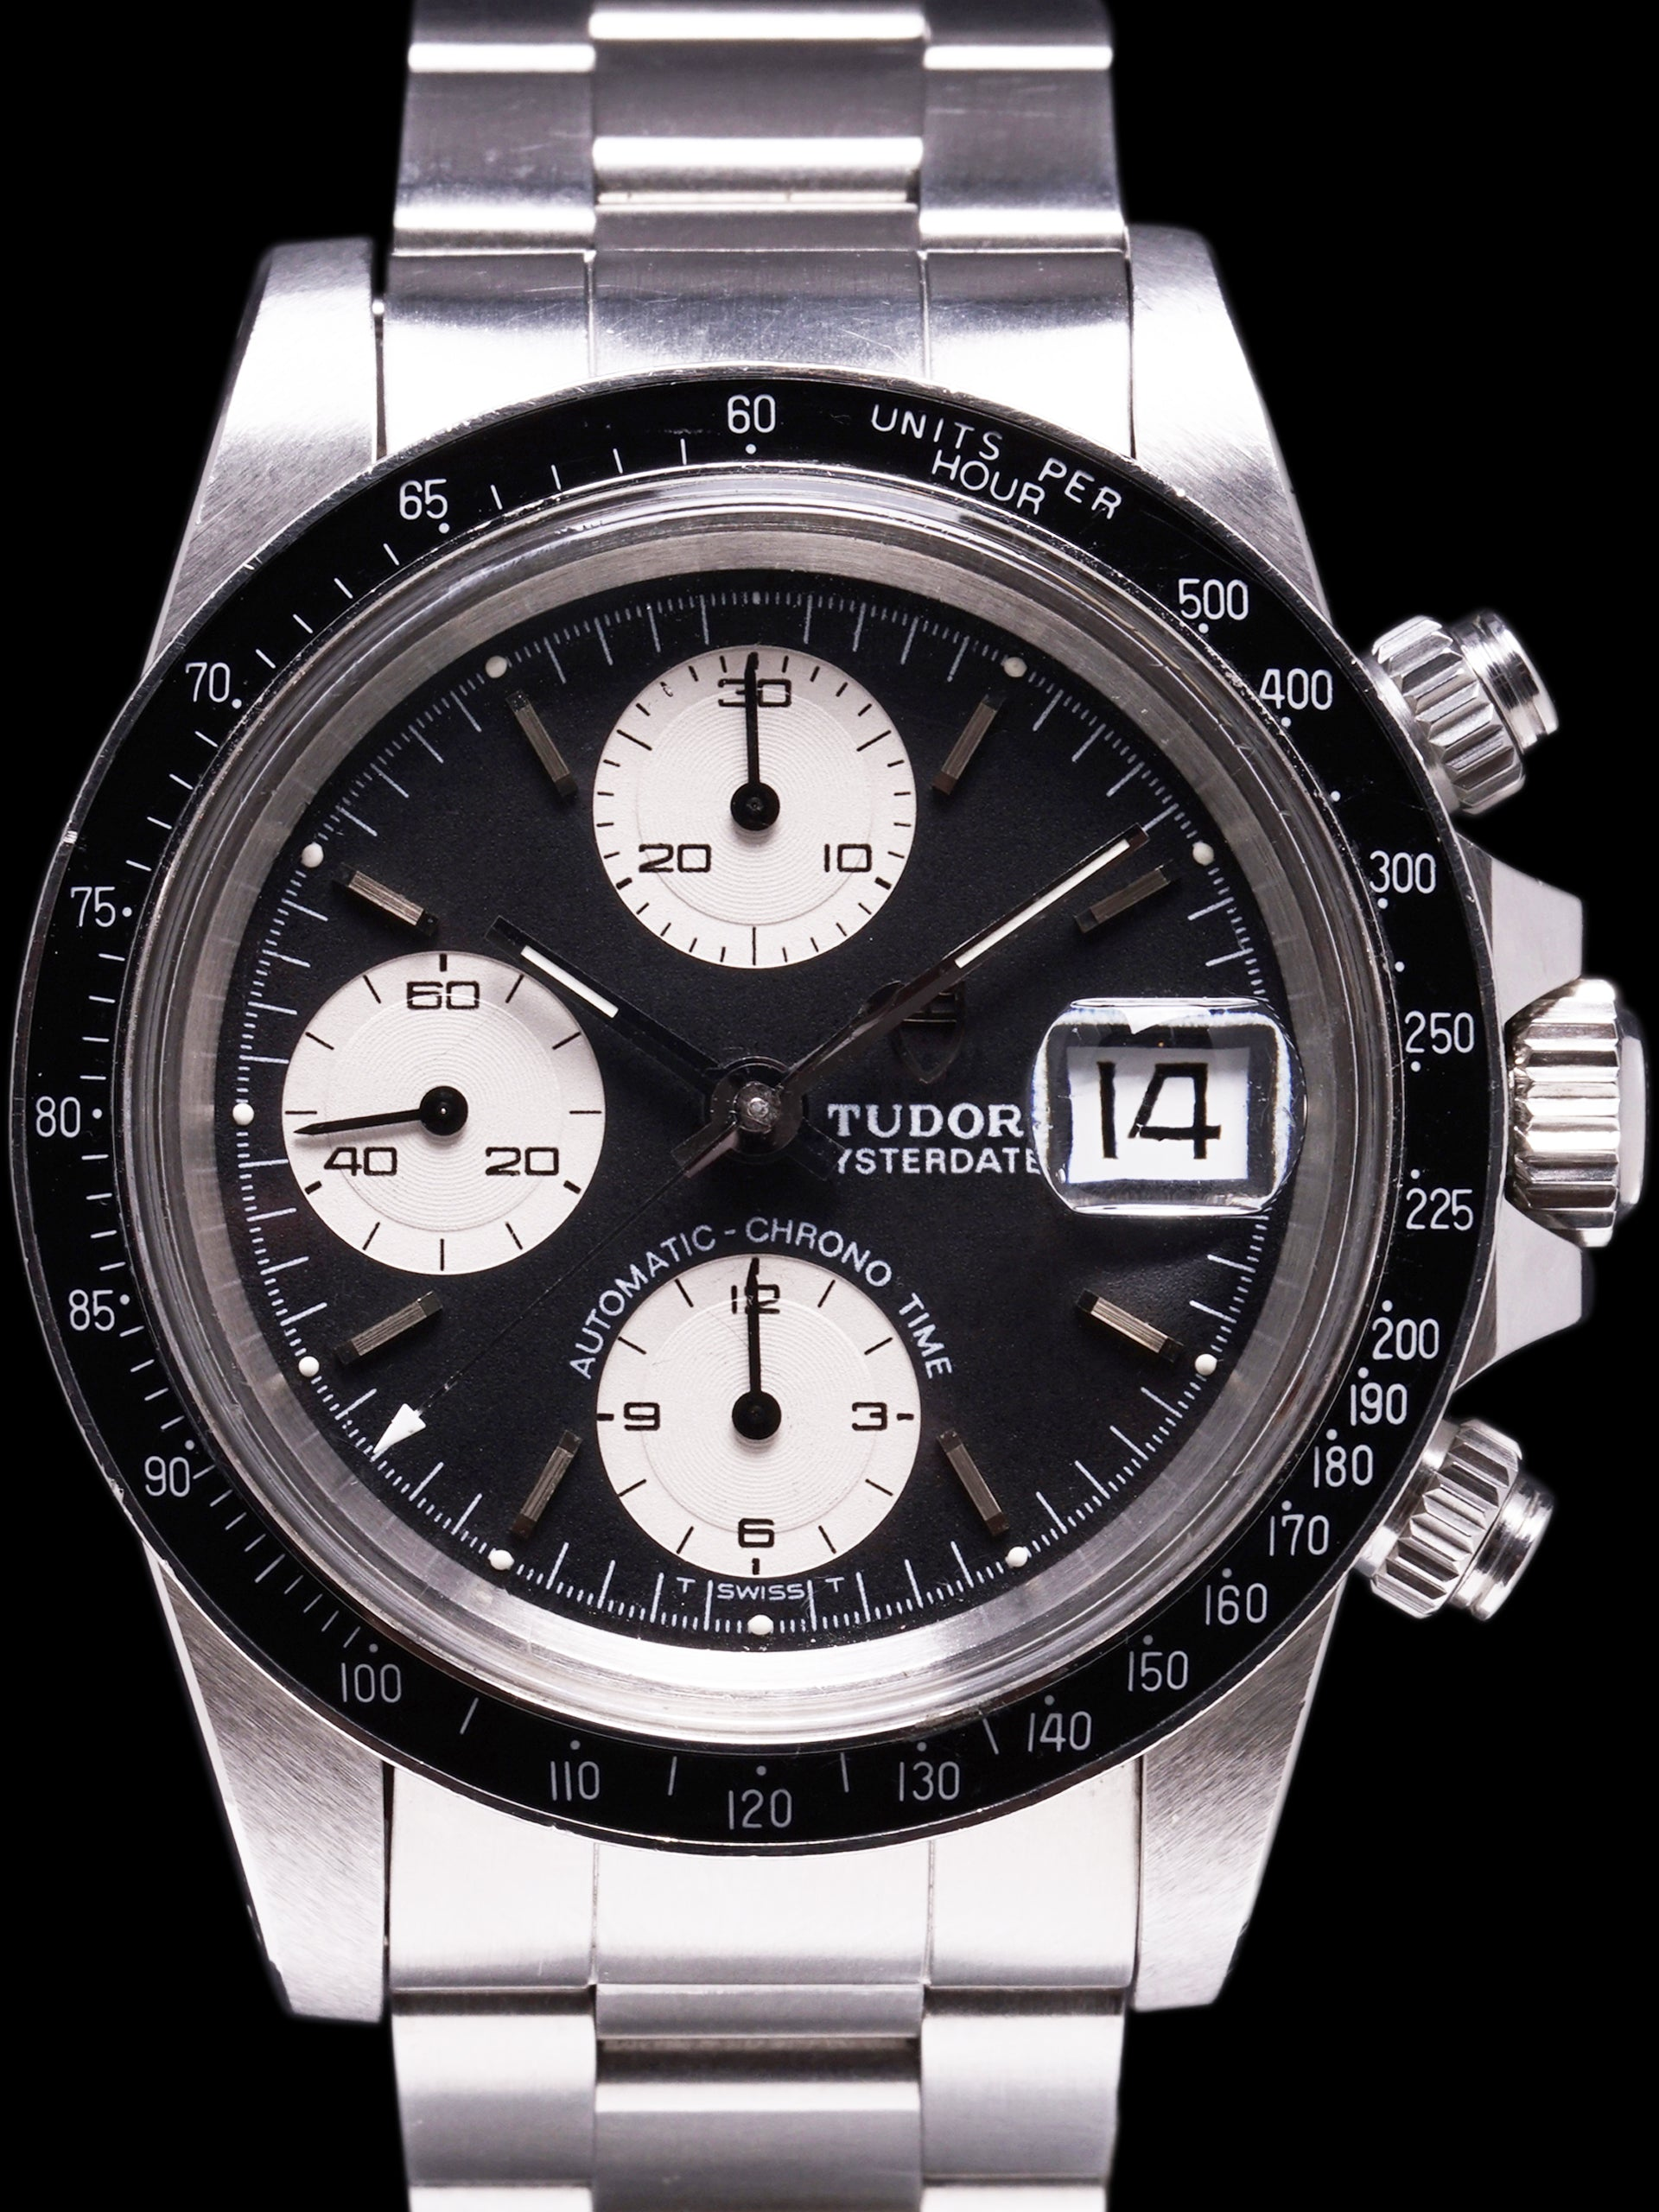 *Unpolished* 1989 Tudor Chronograph Big Block (Ref. 79160)